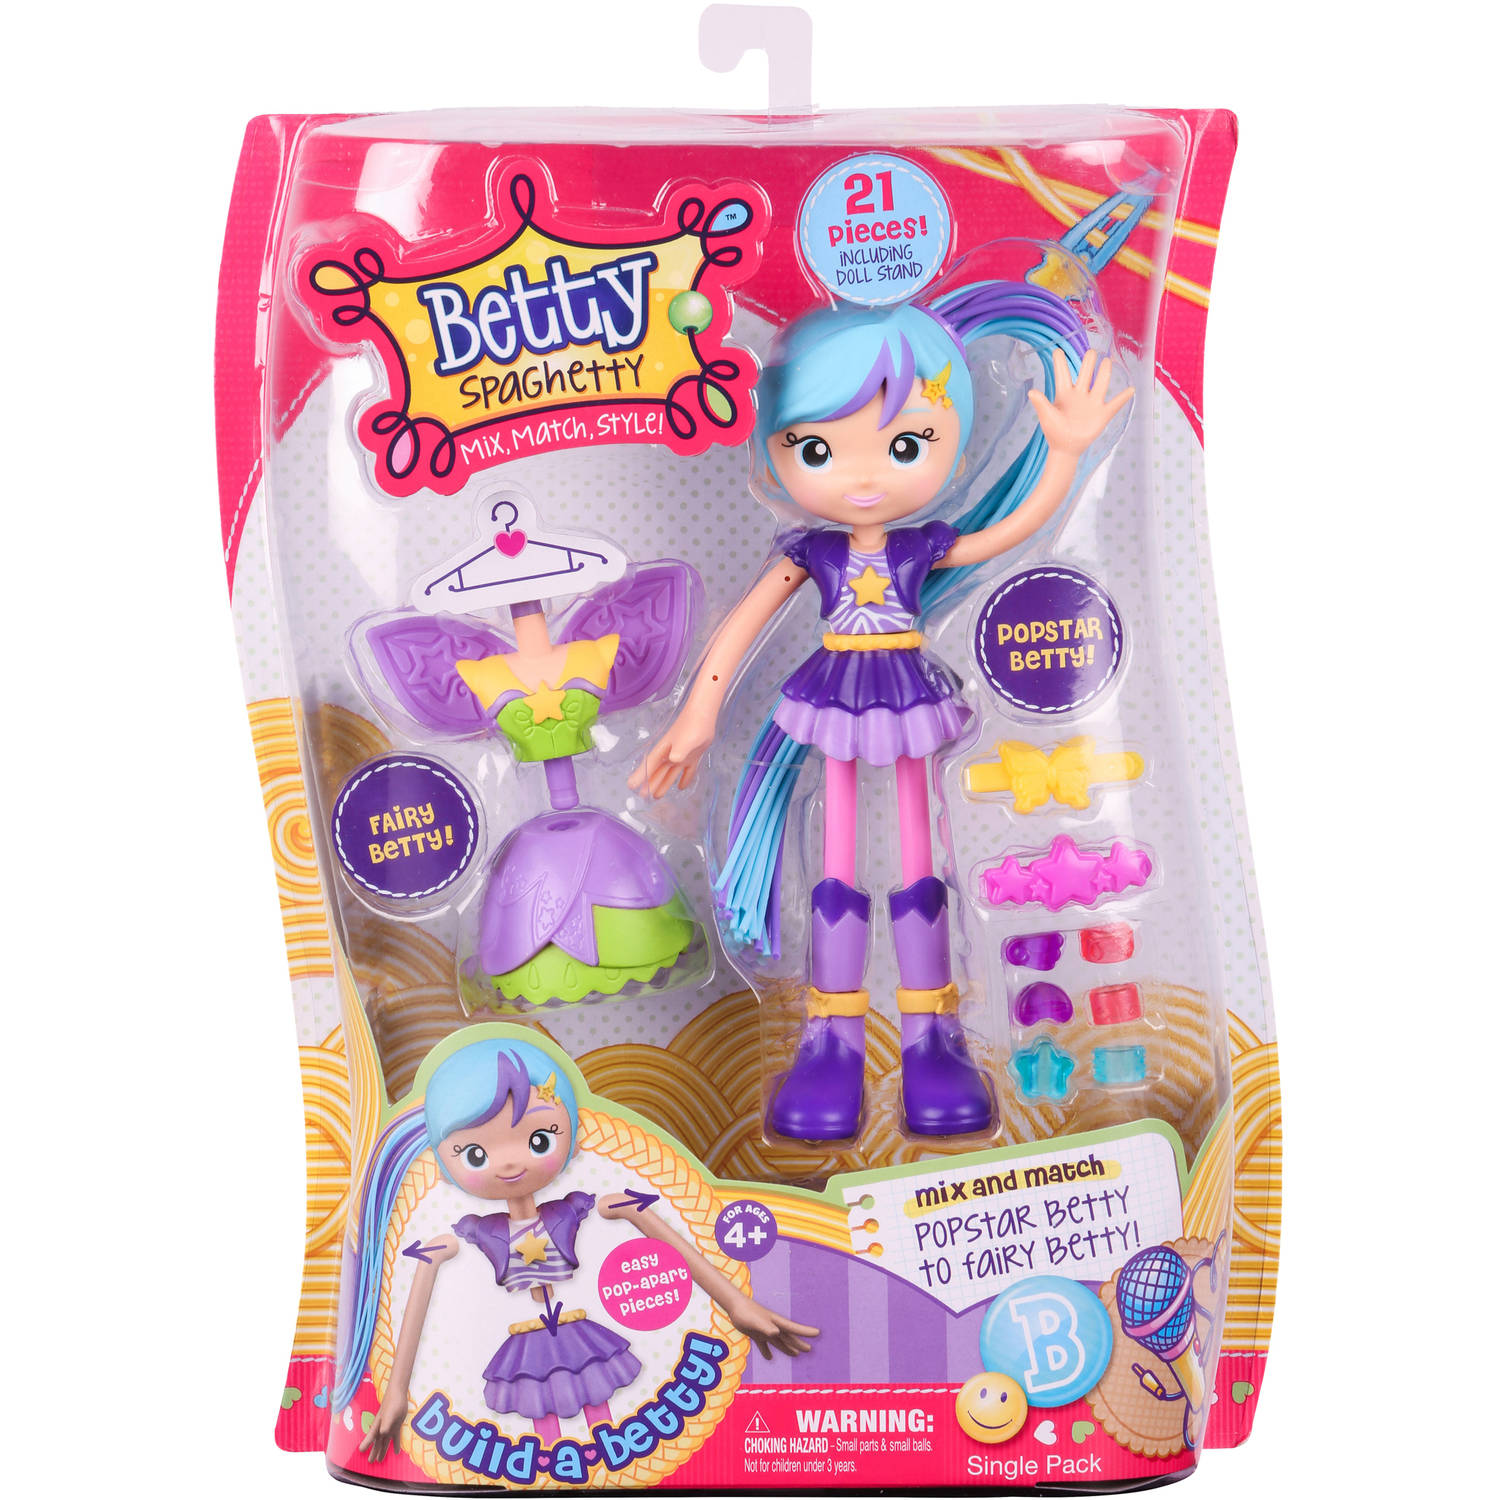 Betty Spaghetty S1 Single Pack, Pop Star Betty